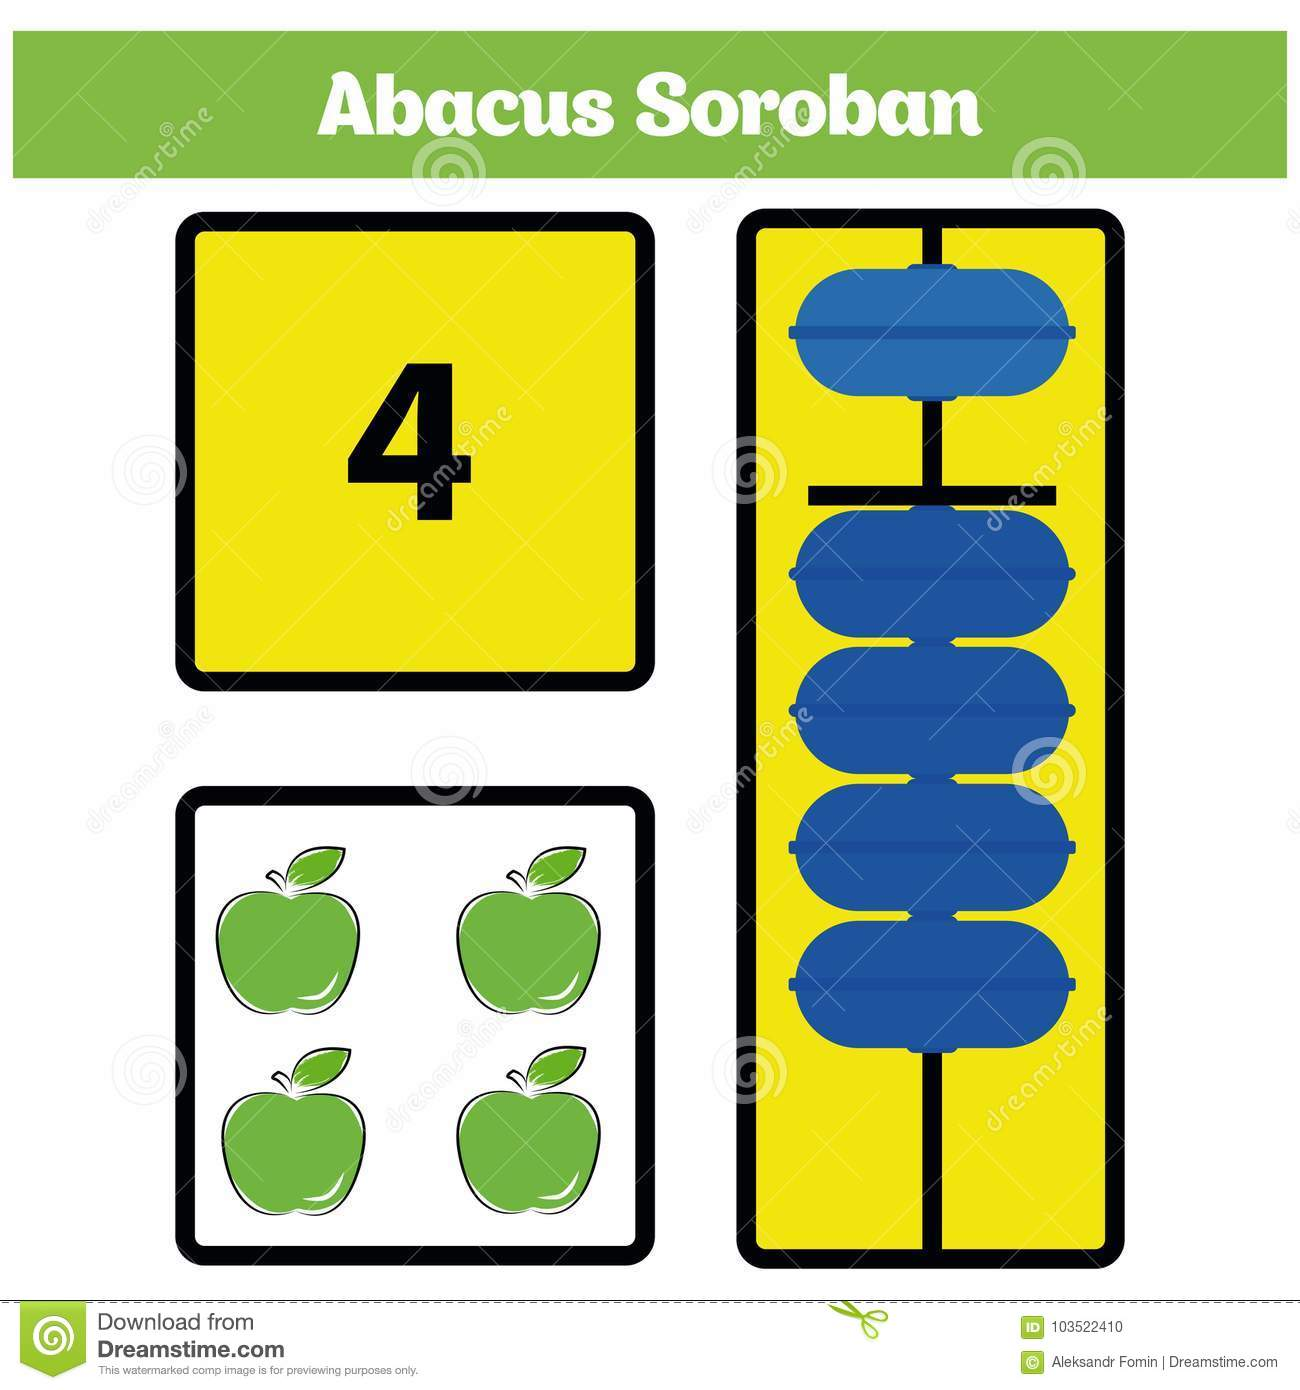 Abacus Soroban Kids Learn Numbers With Abacus Math Worksheet For Children Stock Illustration